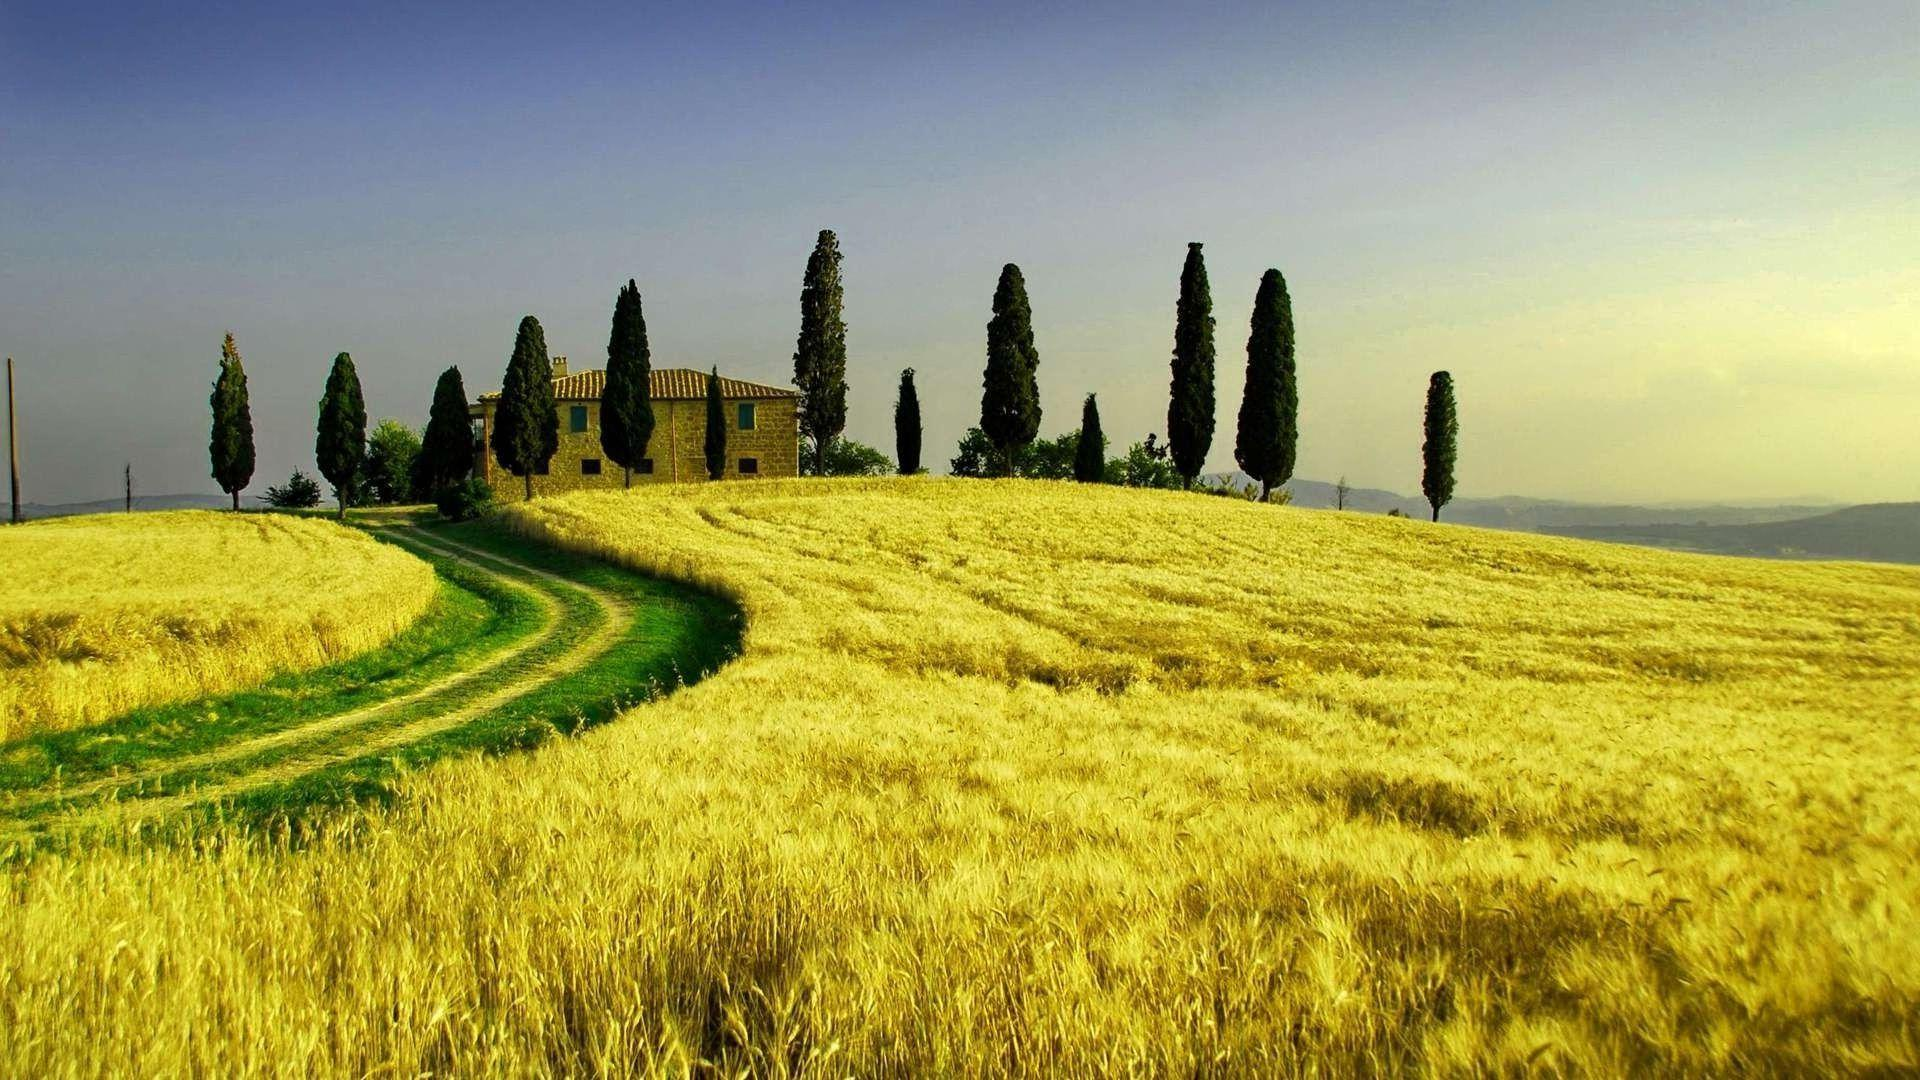 Best 57+ Tuscany Wallpaper on HipWallpaper | Tuscany Wallpaper ...